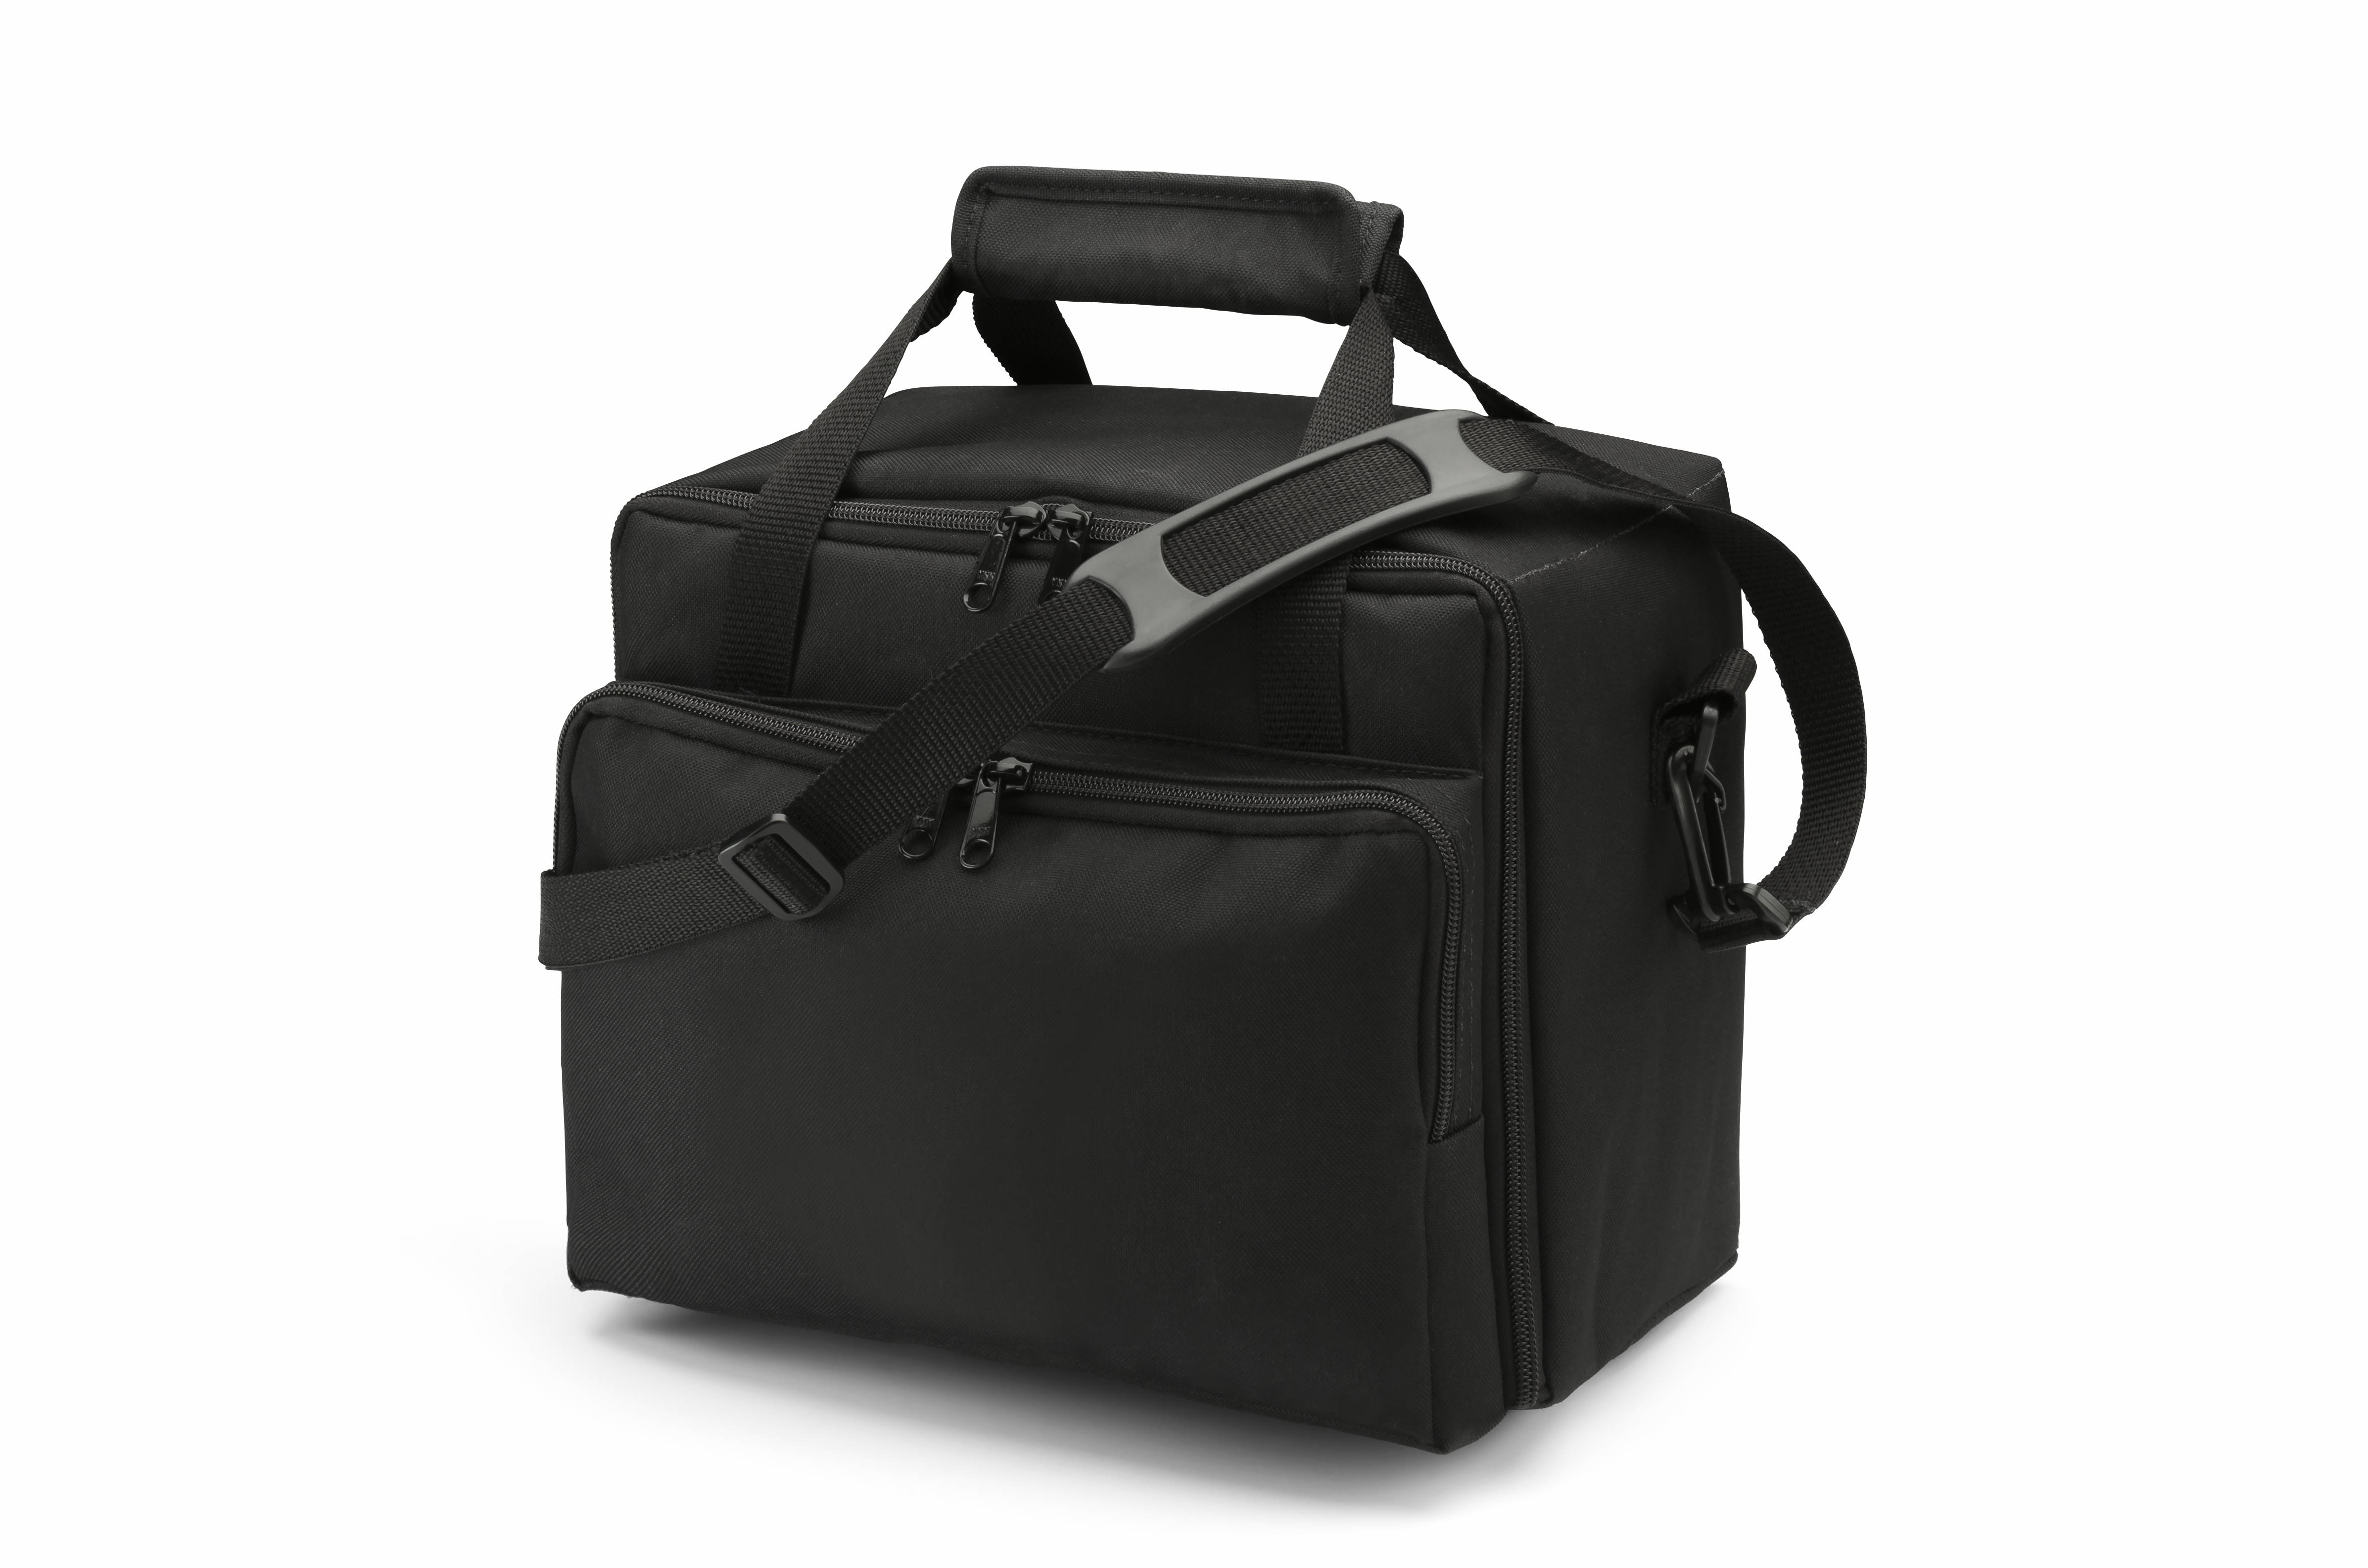 106144: Welch Allyn VS100 Spot Vision Screener Carrying Case